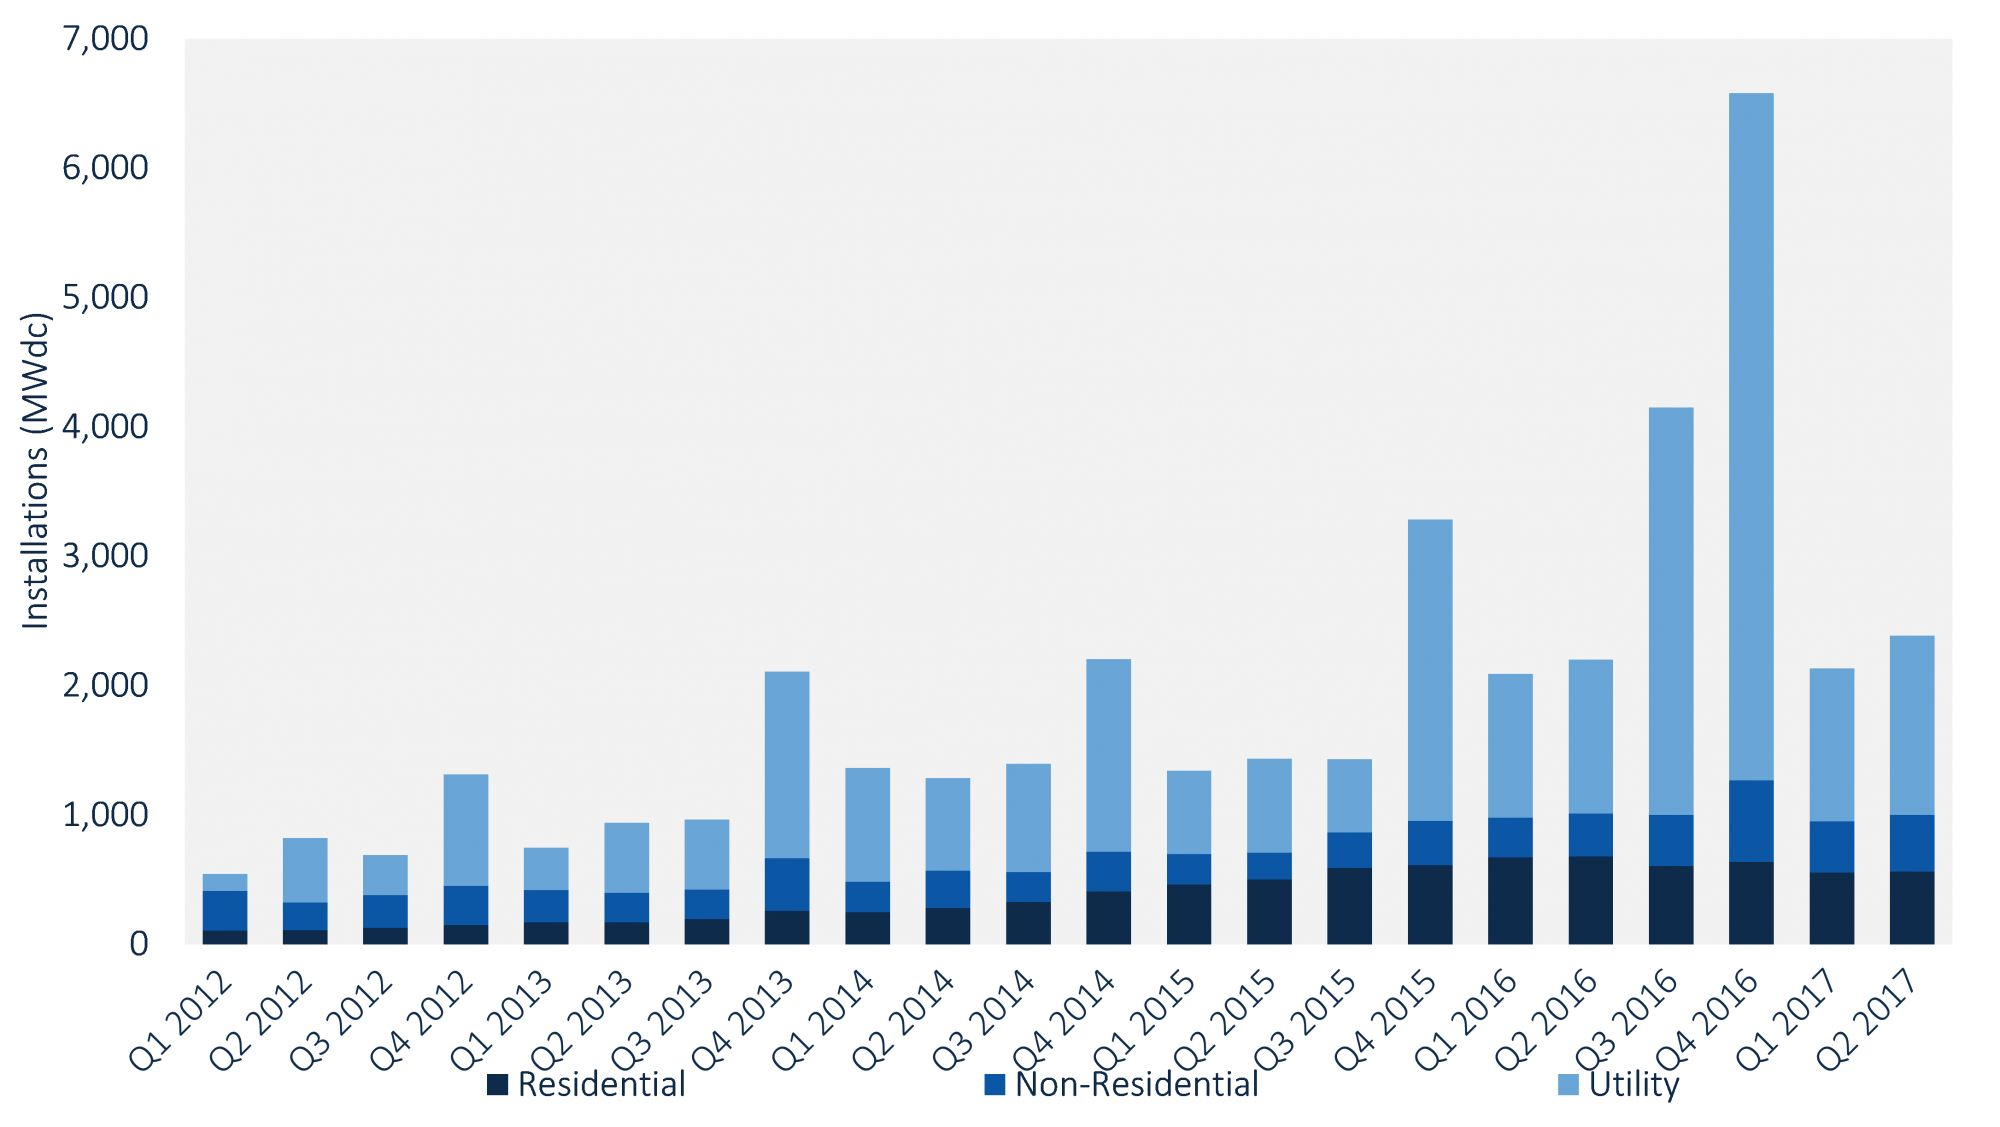 US Residential Solar Market Forecast to Decline for the